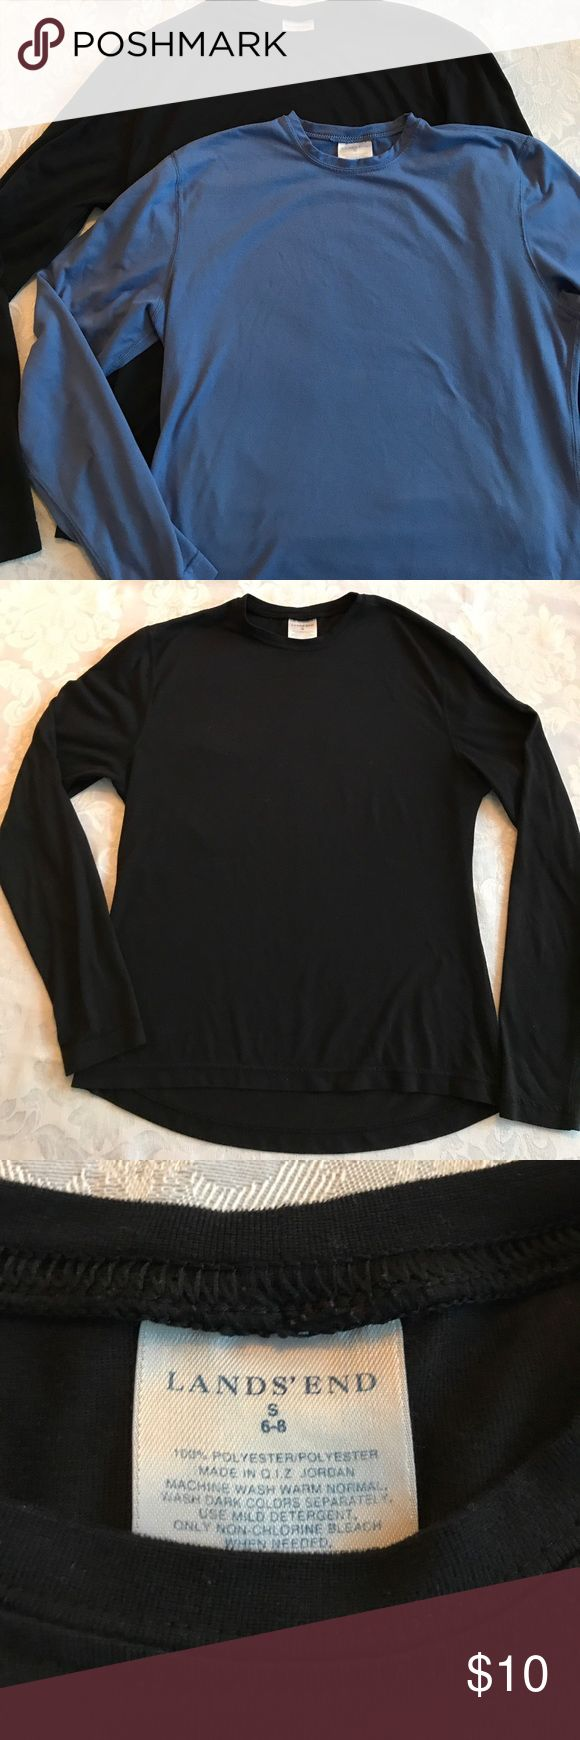 Set of Black and Blue Long Sleeve Tops These lightweight long underwear tops will keep you toasty when cold weather hits. A good base layer is important and these high quality crew neck tops are made of high-performance fabric that help you maintain your comfort when the temperature plunges. The black top is size small; the blue one is a small petite. In EUC with no holes or stains. Lands' End Intimates & Sleepwear